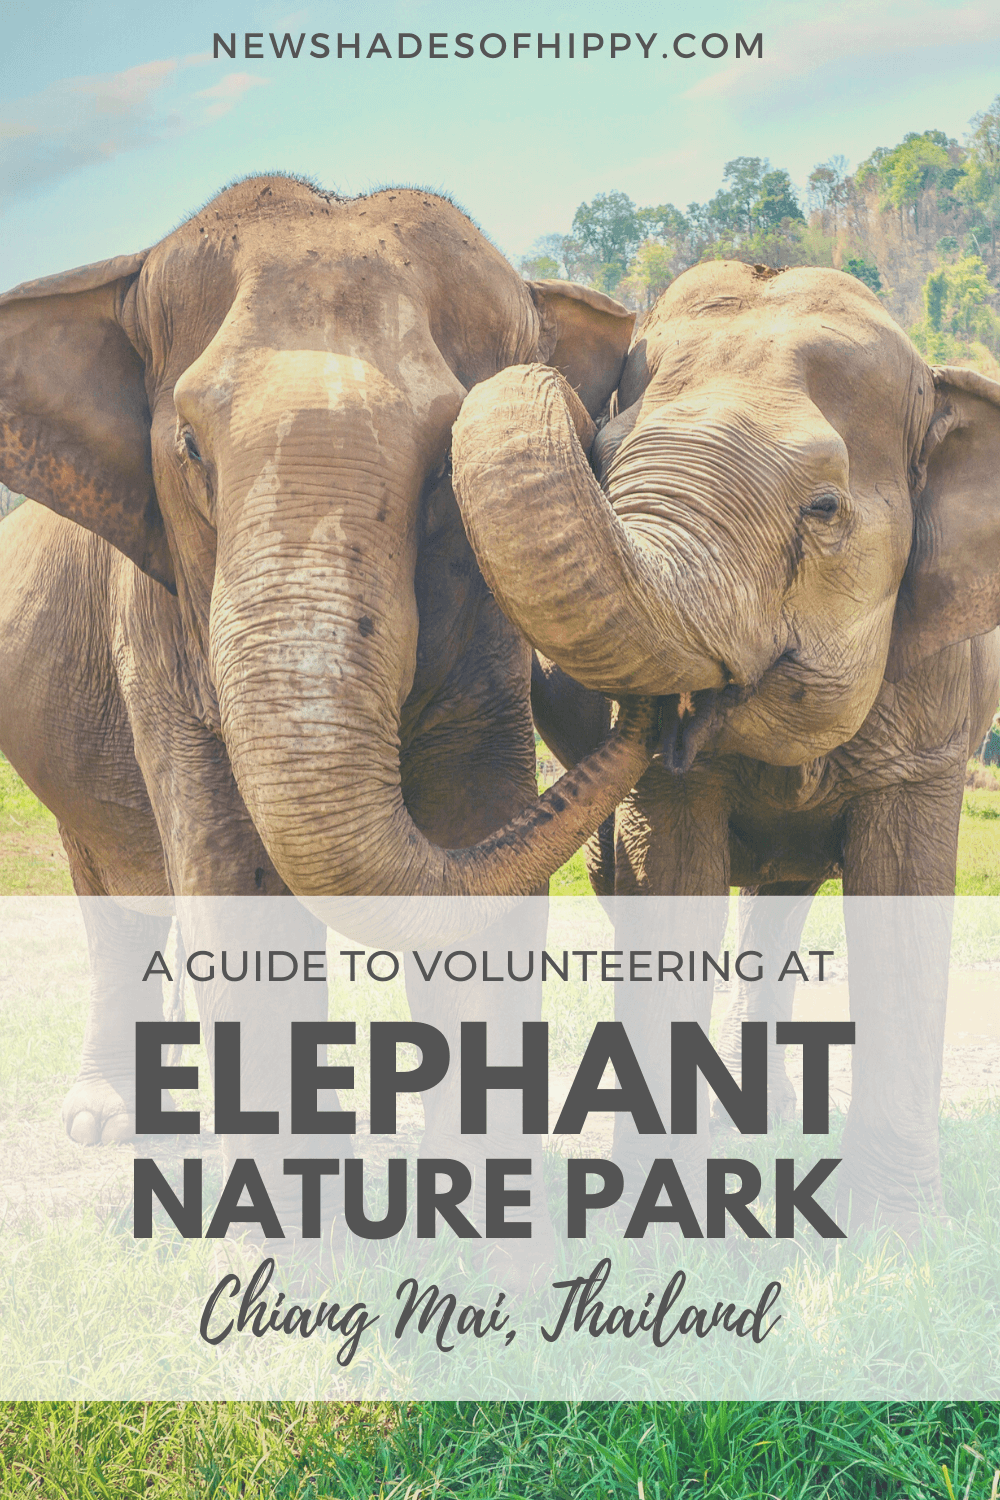 Two elephanrs stood together with text: A guide to volunteering at Elephant Nature Park Chiang Mai, Thailand